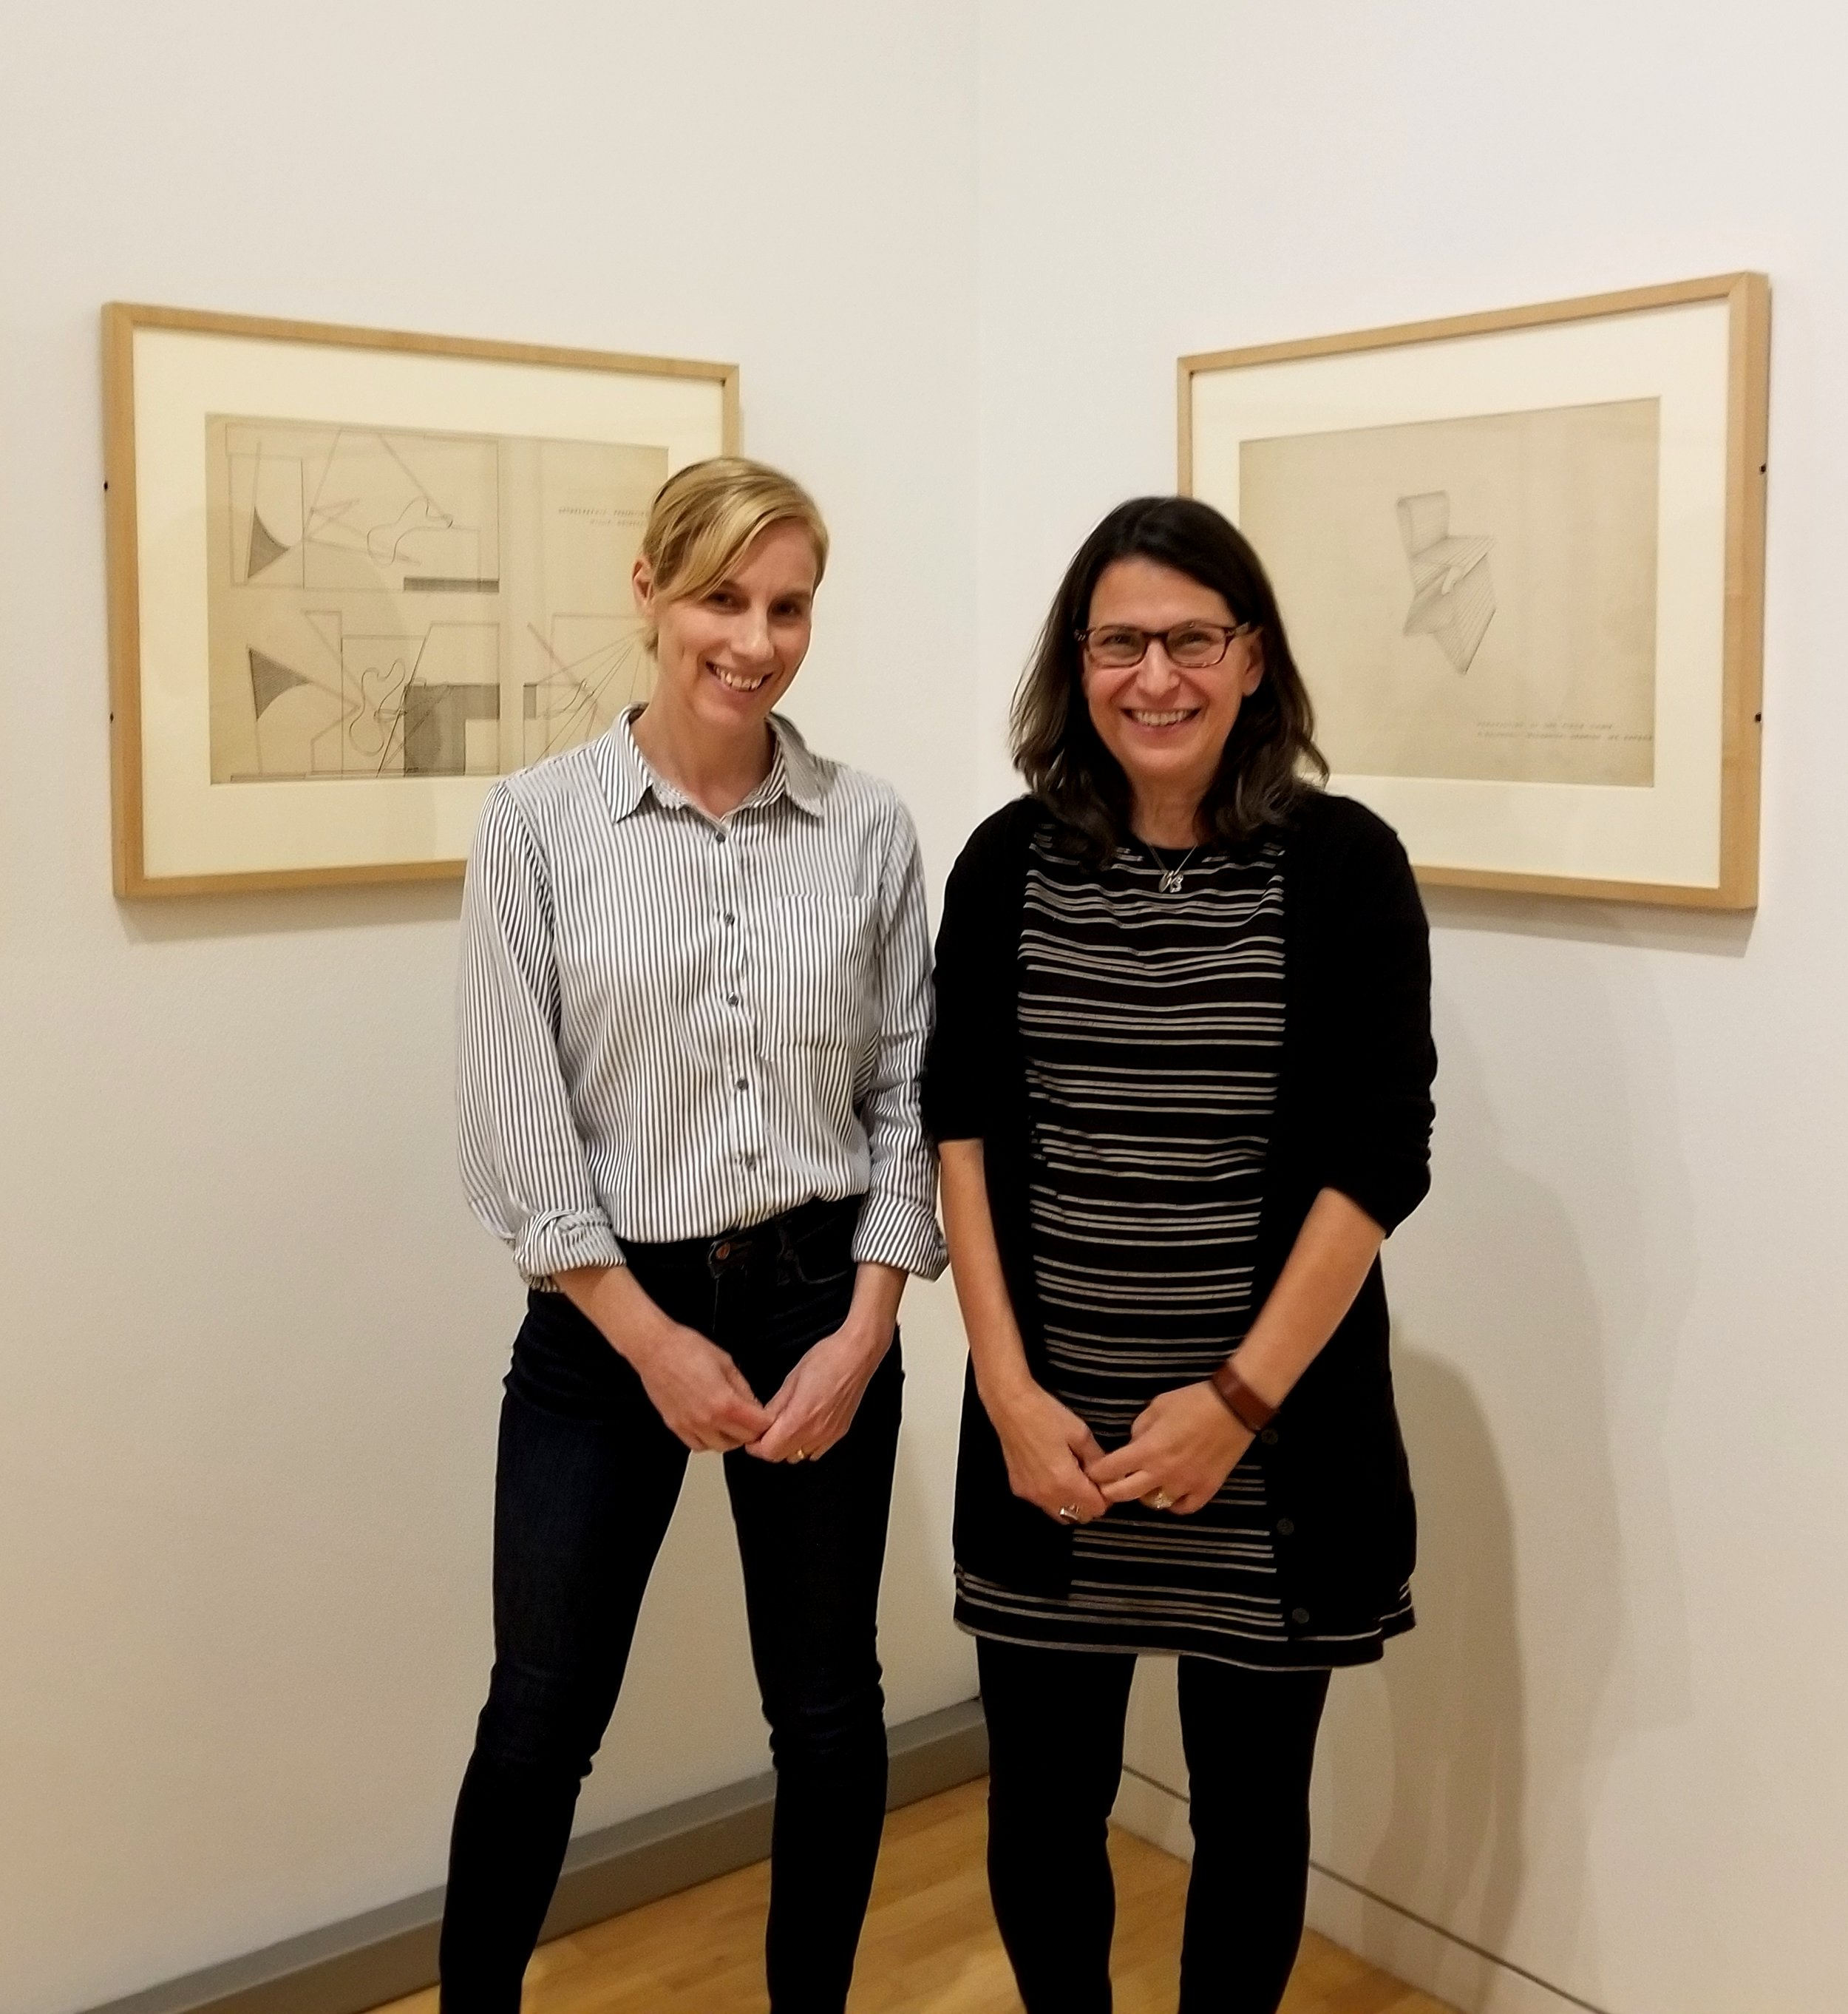 Co-curators: Amy Beste, Director of Public Programs in the Department of Film, Video, New Media & Animation at the School of the Art Institute and Corinne Granof, Curator of Academic Programs at the Block Museum of Art.